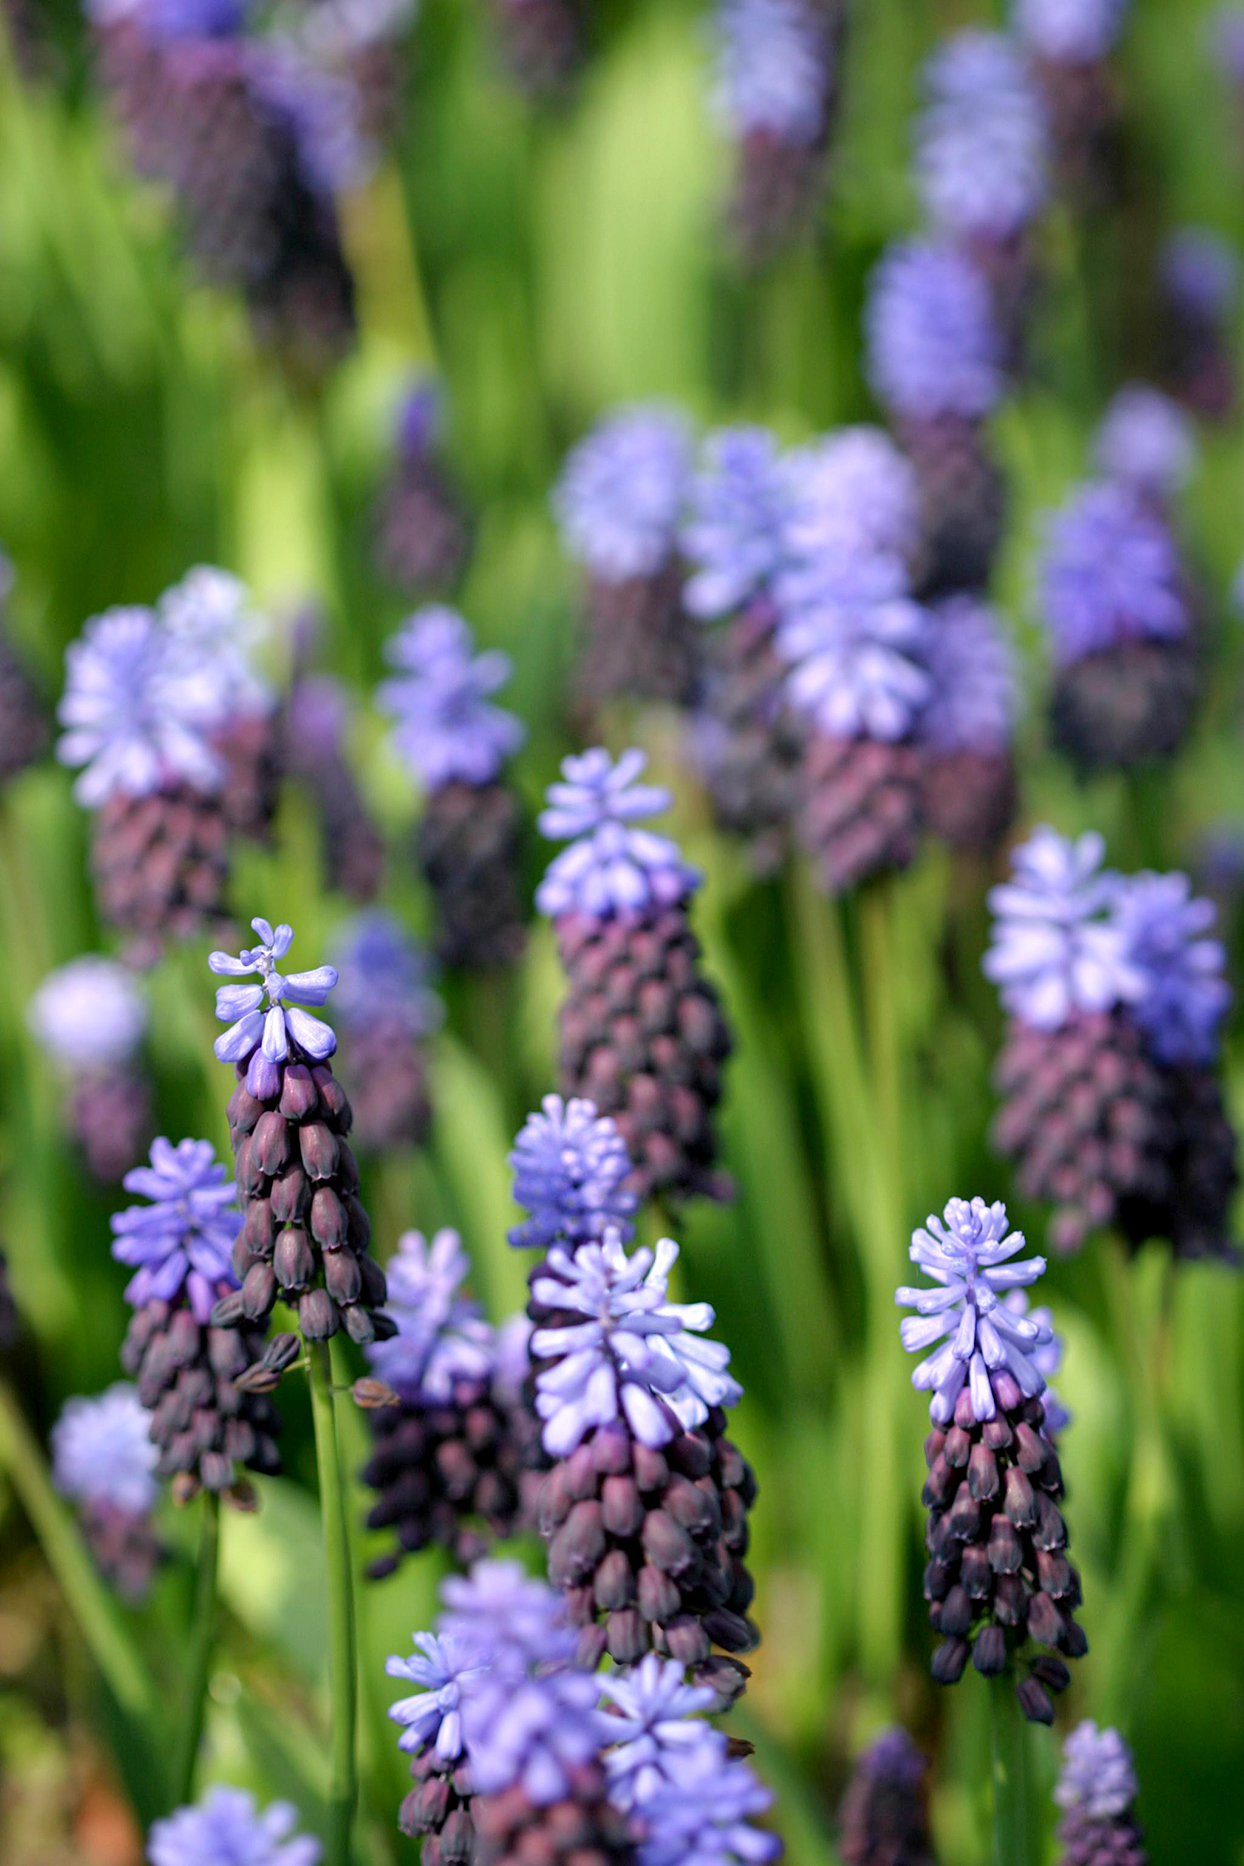 grape hyacinth Muscari latifolium